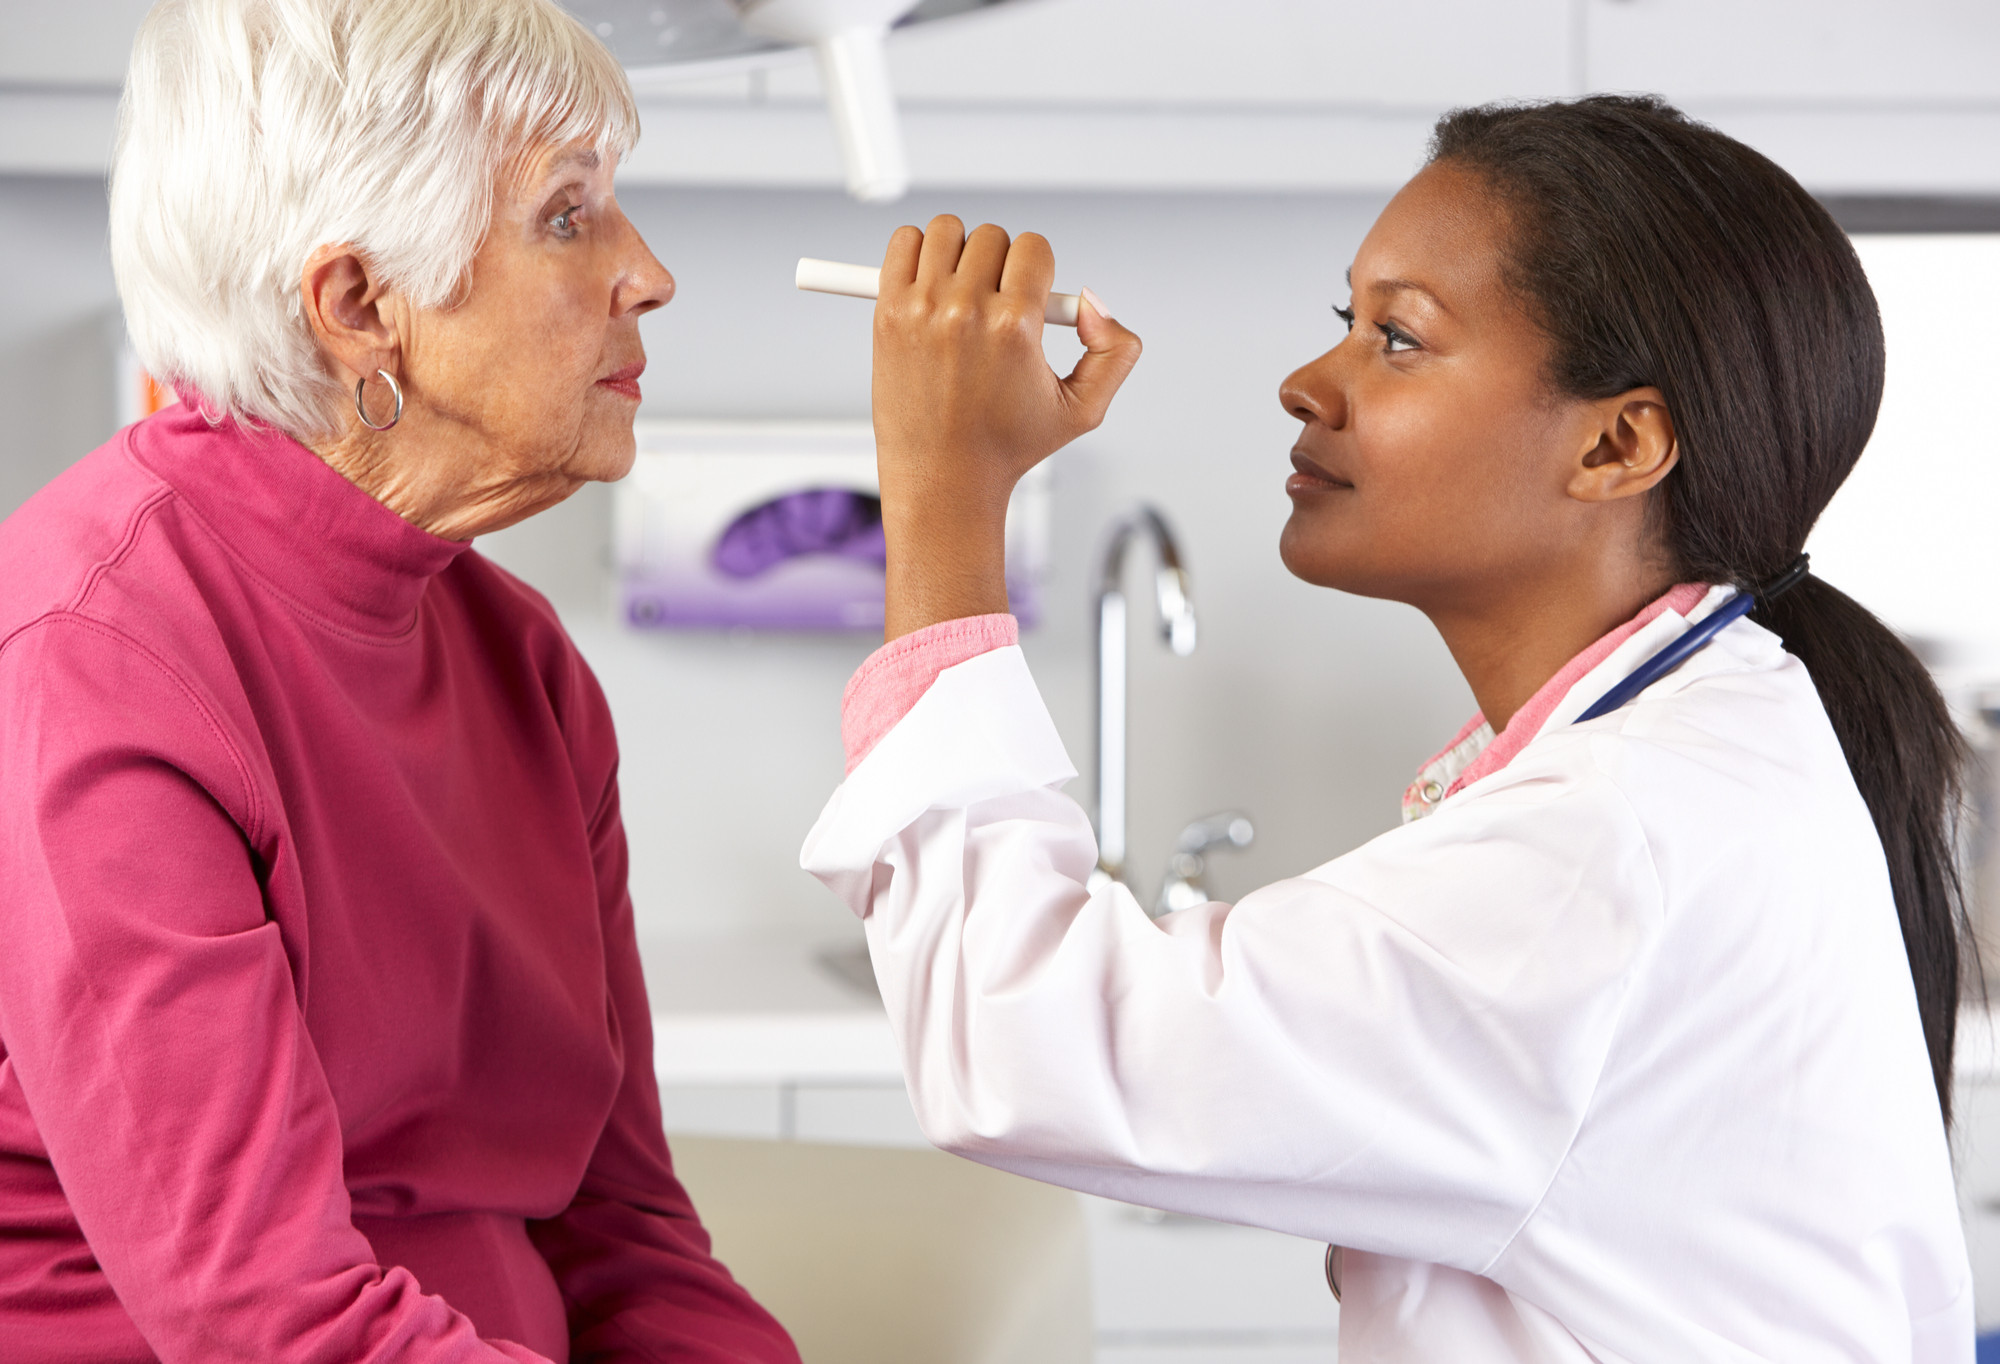 Optometrist examing an eye for common eye conditions